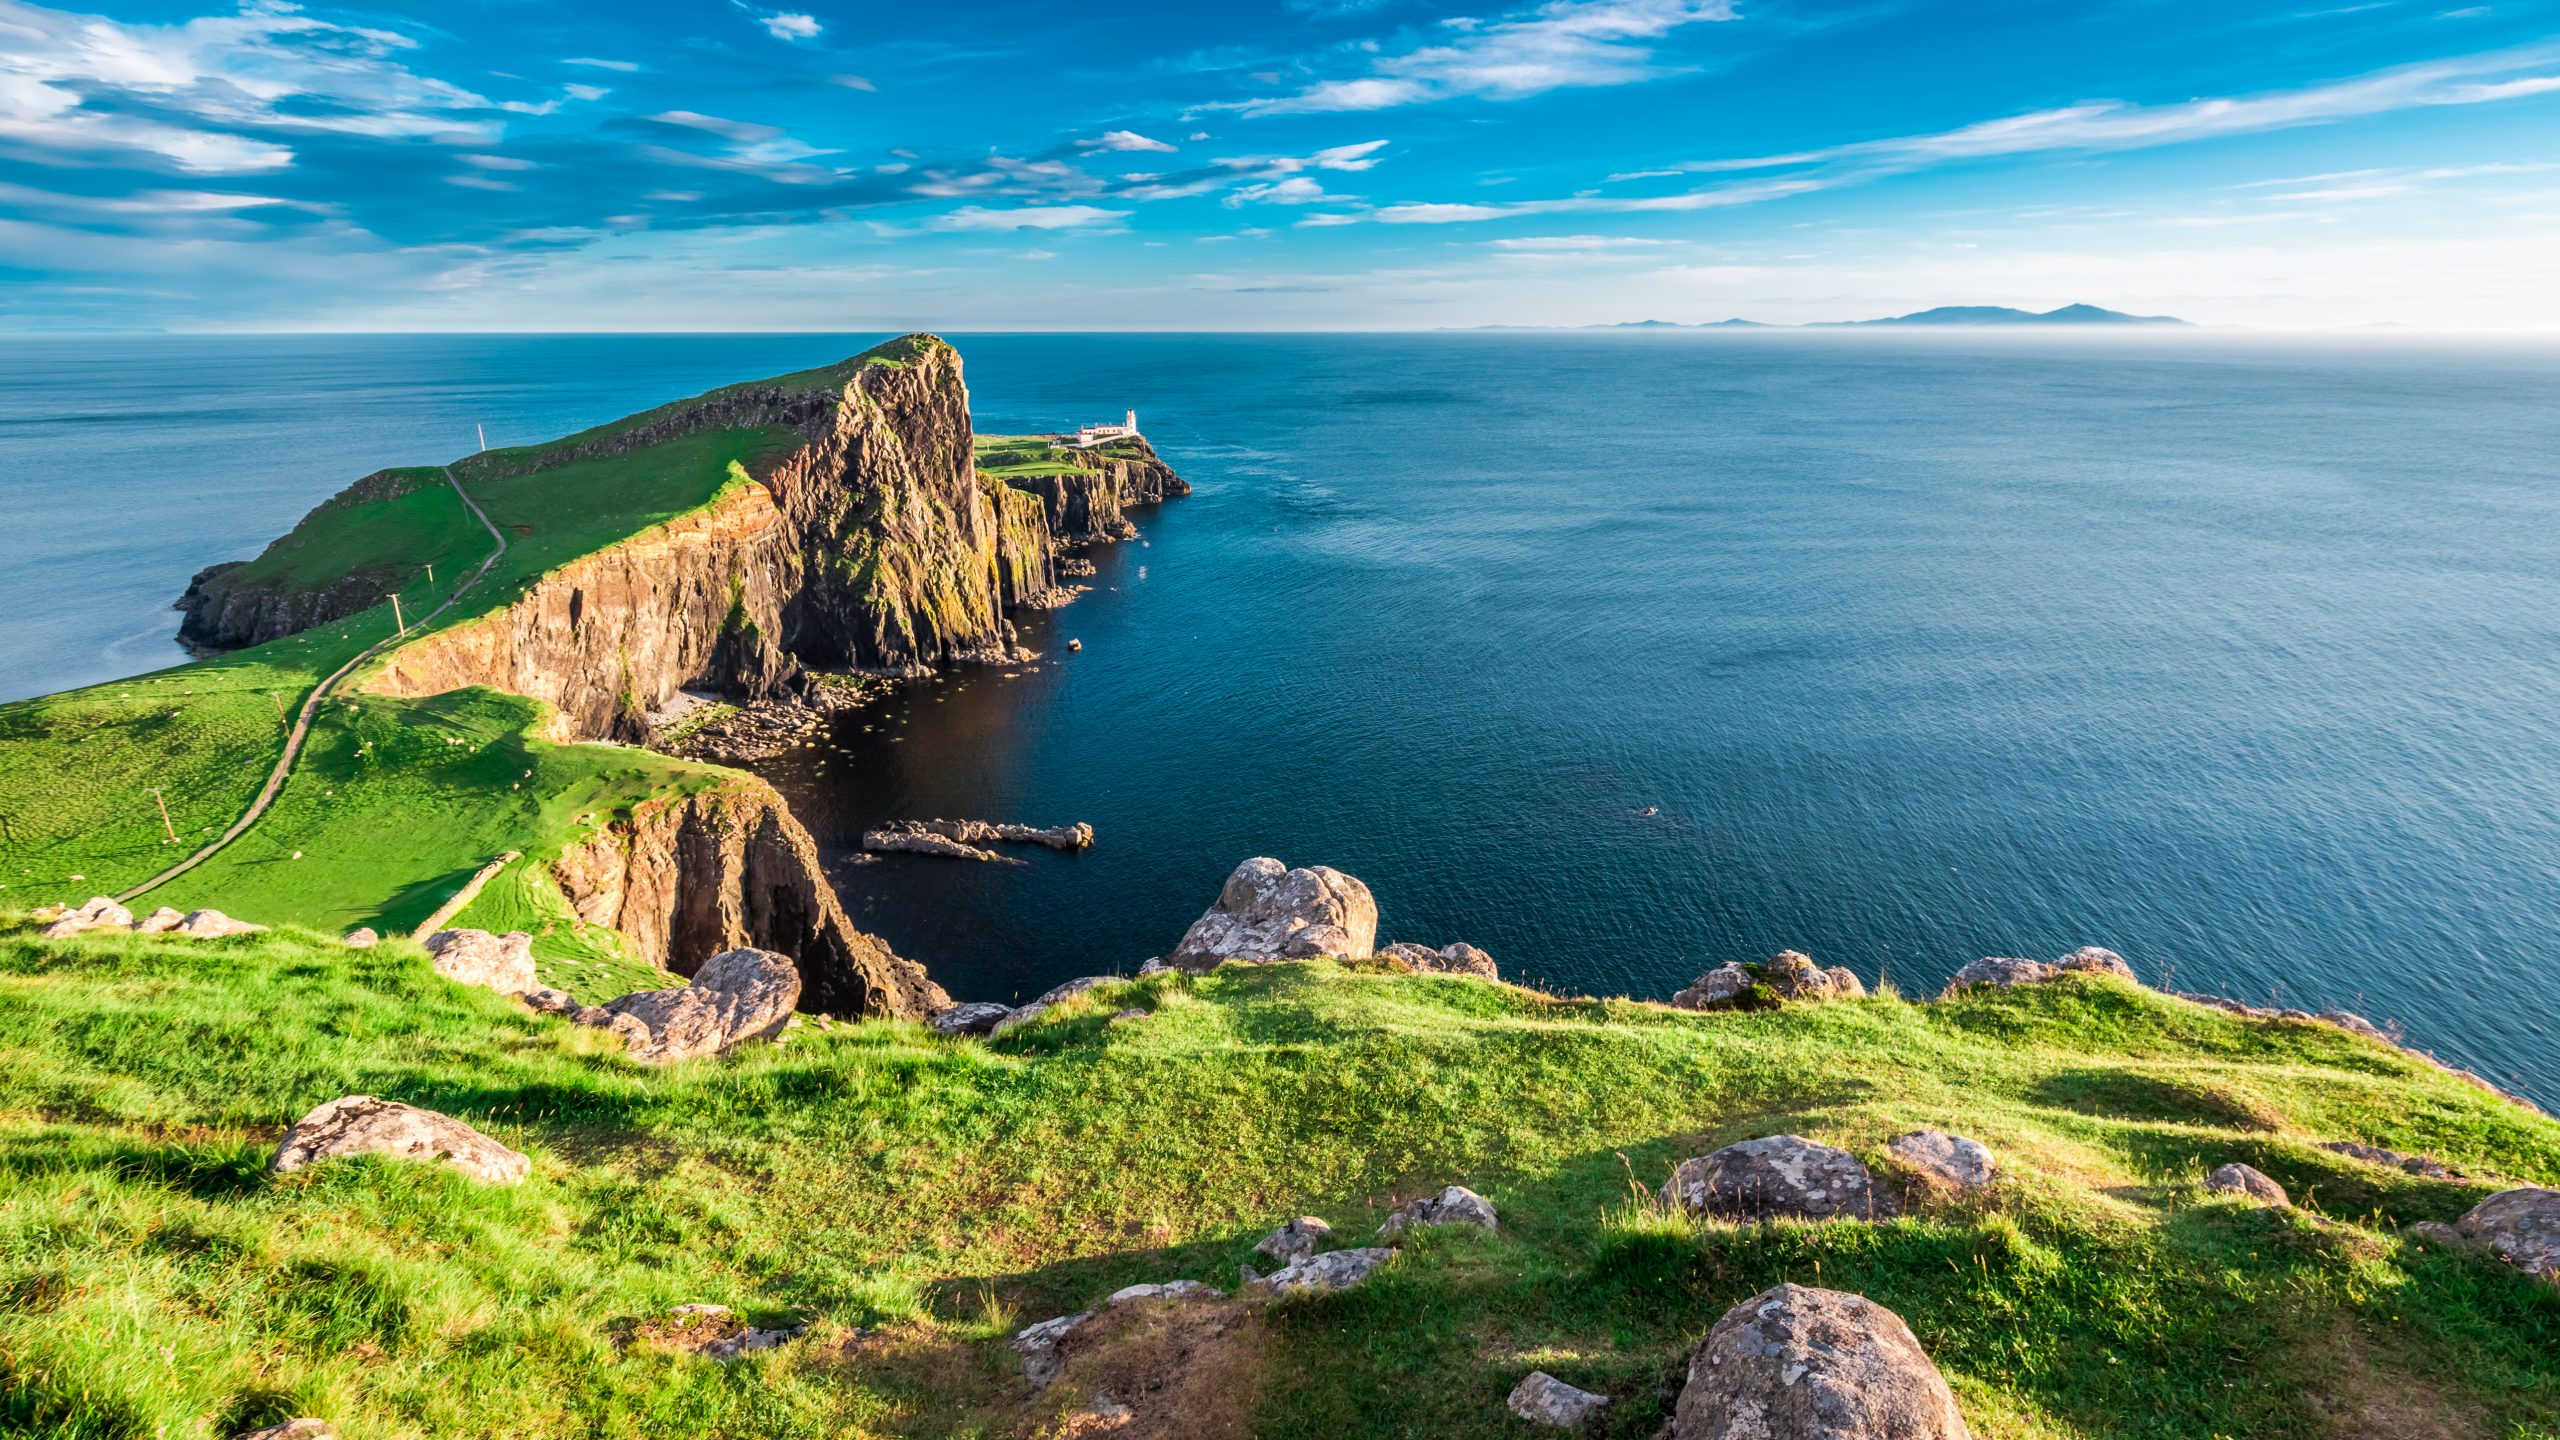 Sunny day at the Neist point lighthouse in Isle of Skye, Scotland